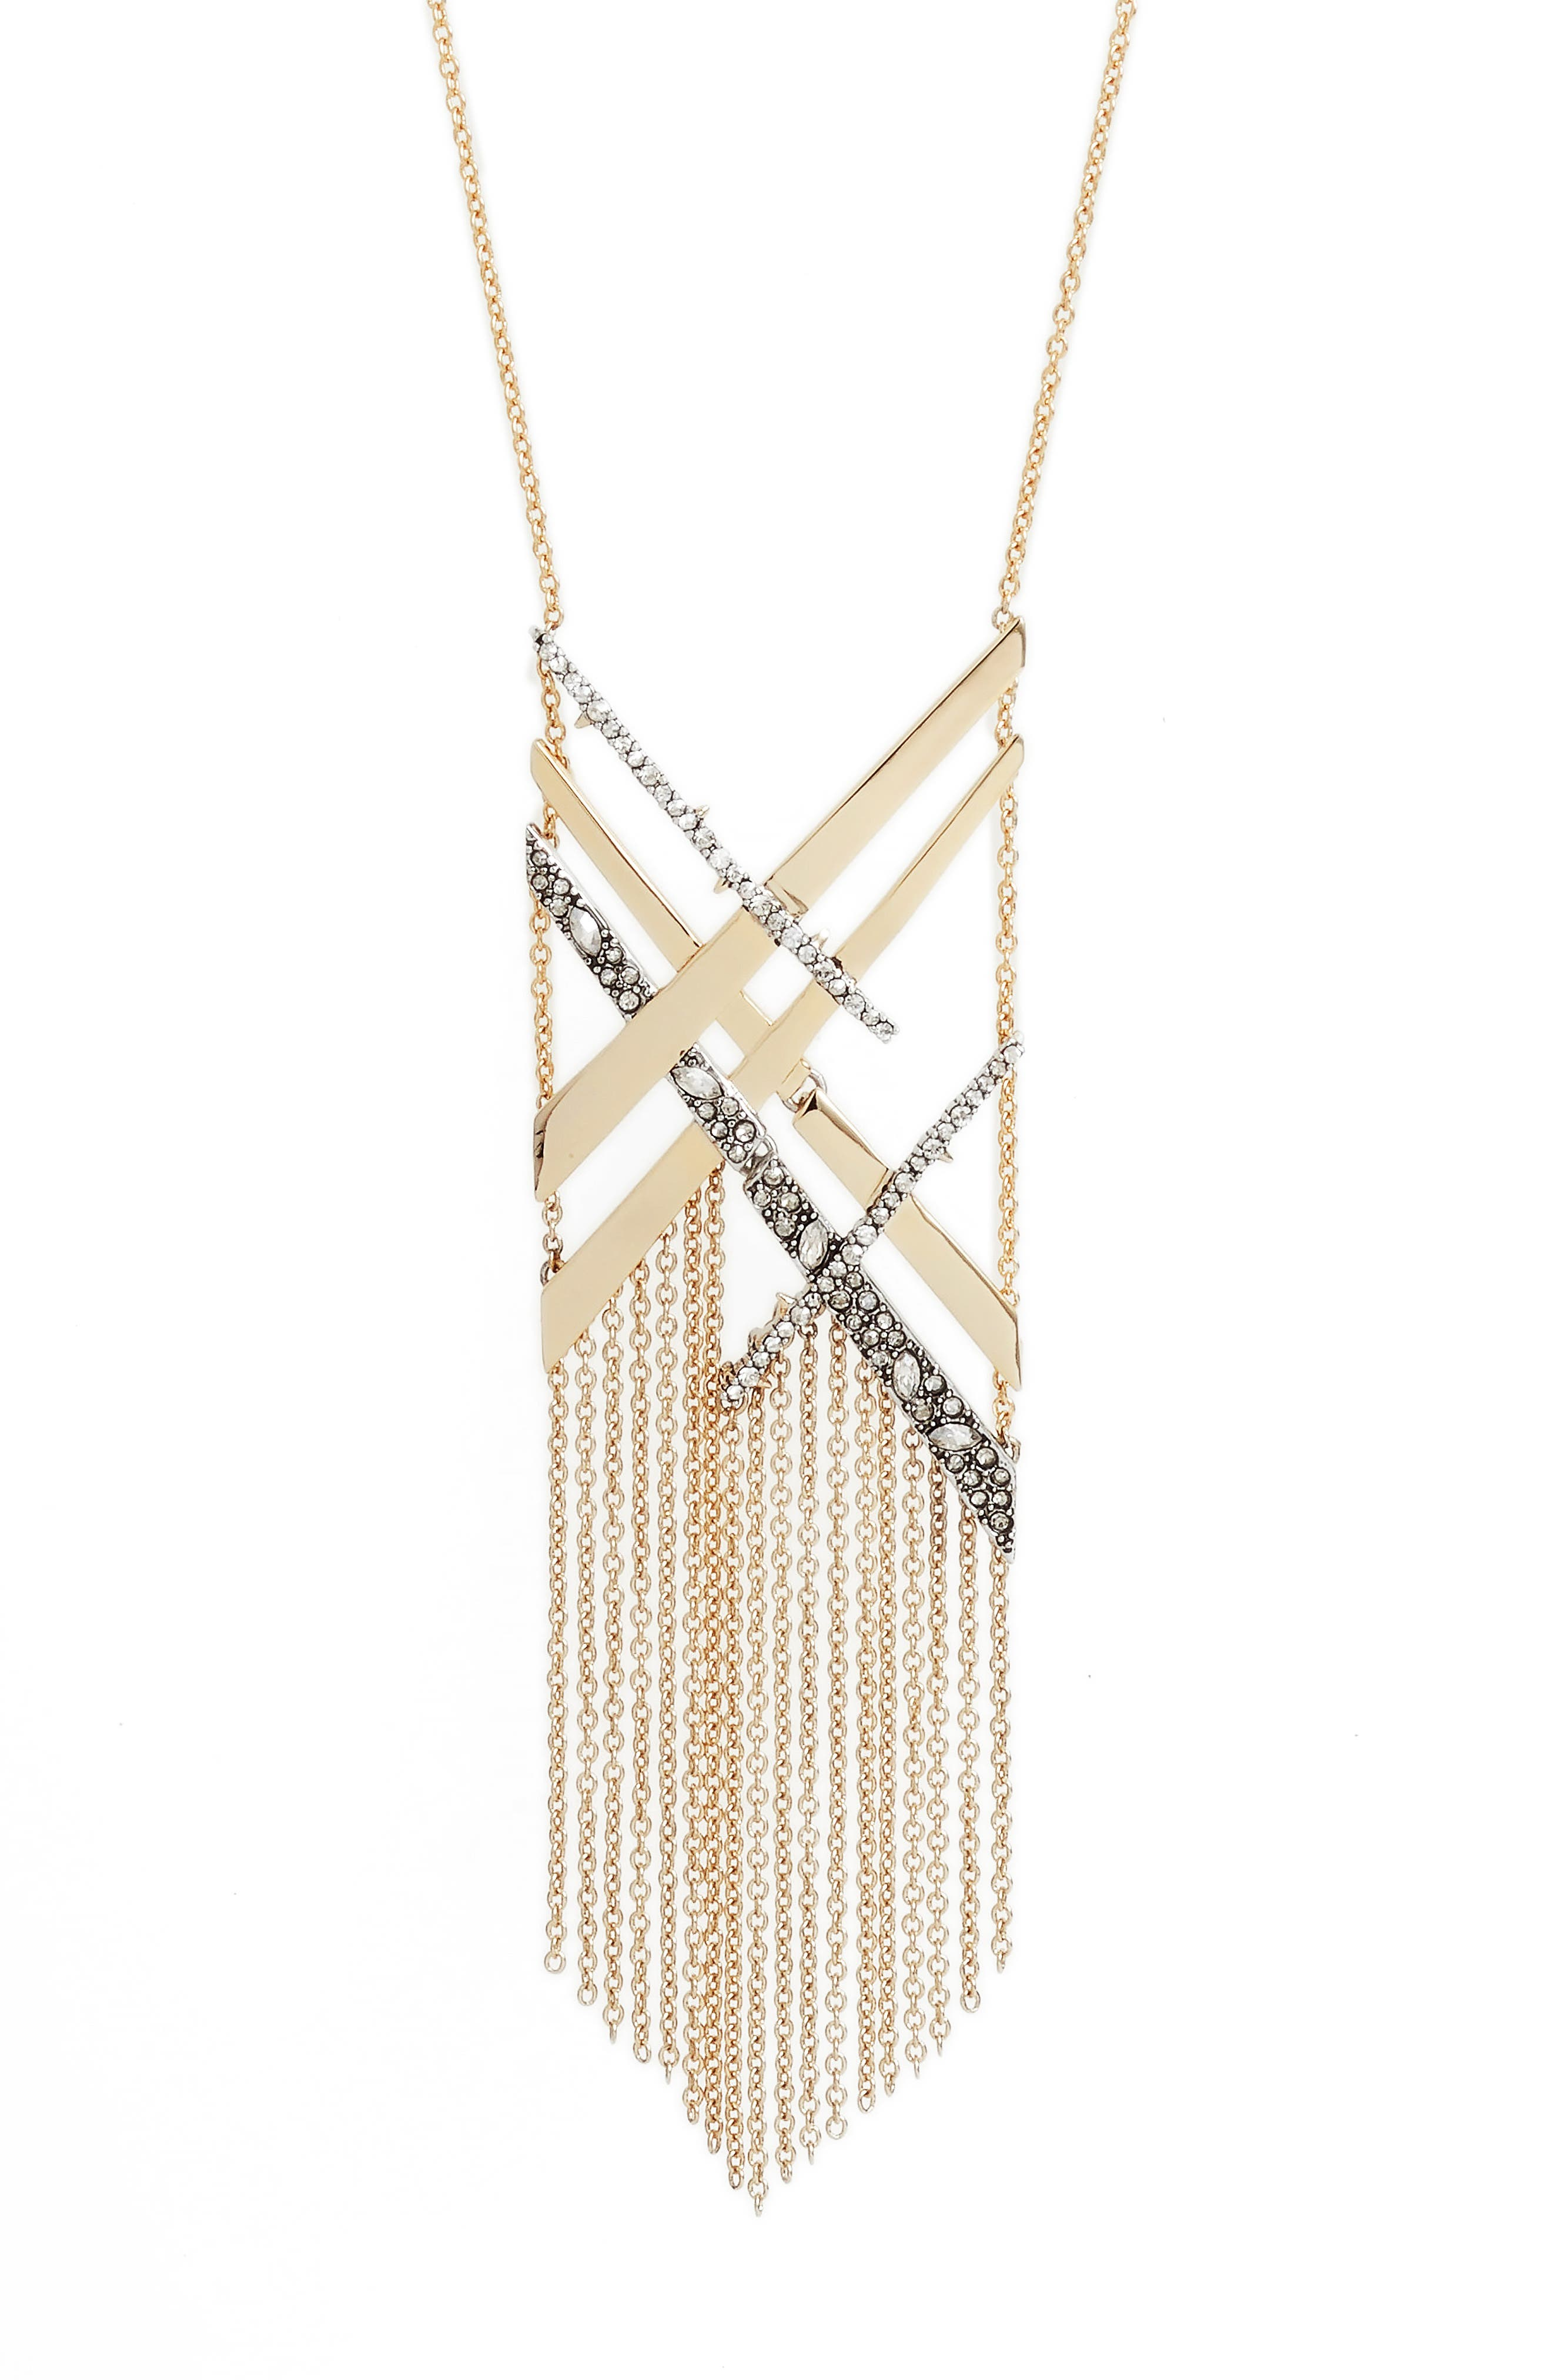 Plaid Tassel Necklace,                             Alternate thumbnail 2, color,                             Gold/ Silver